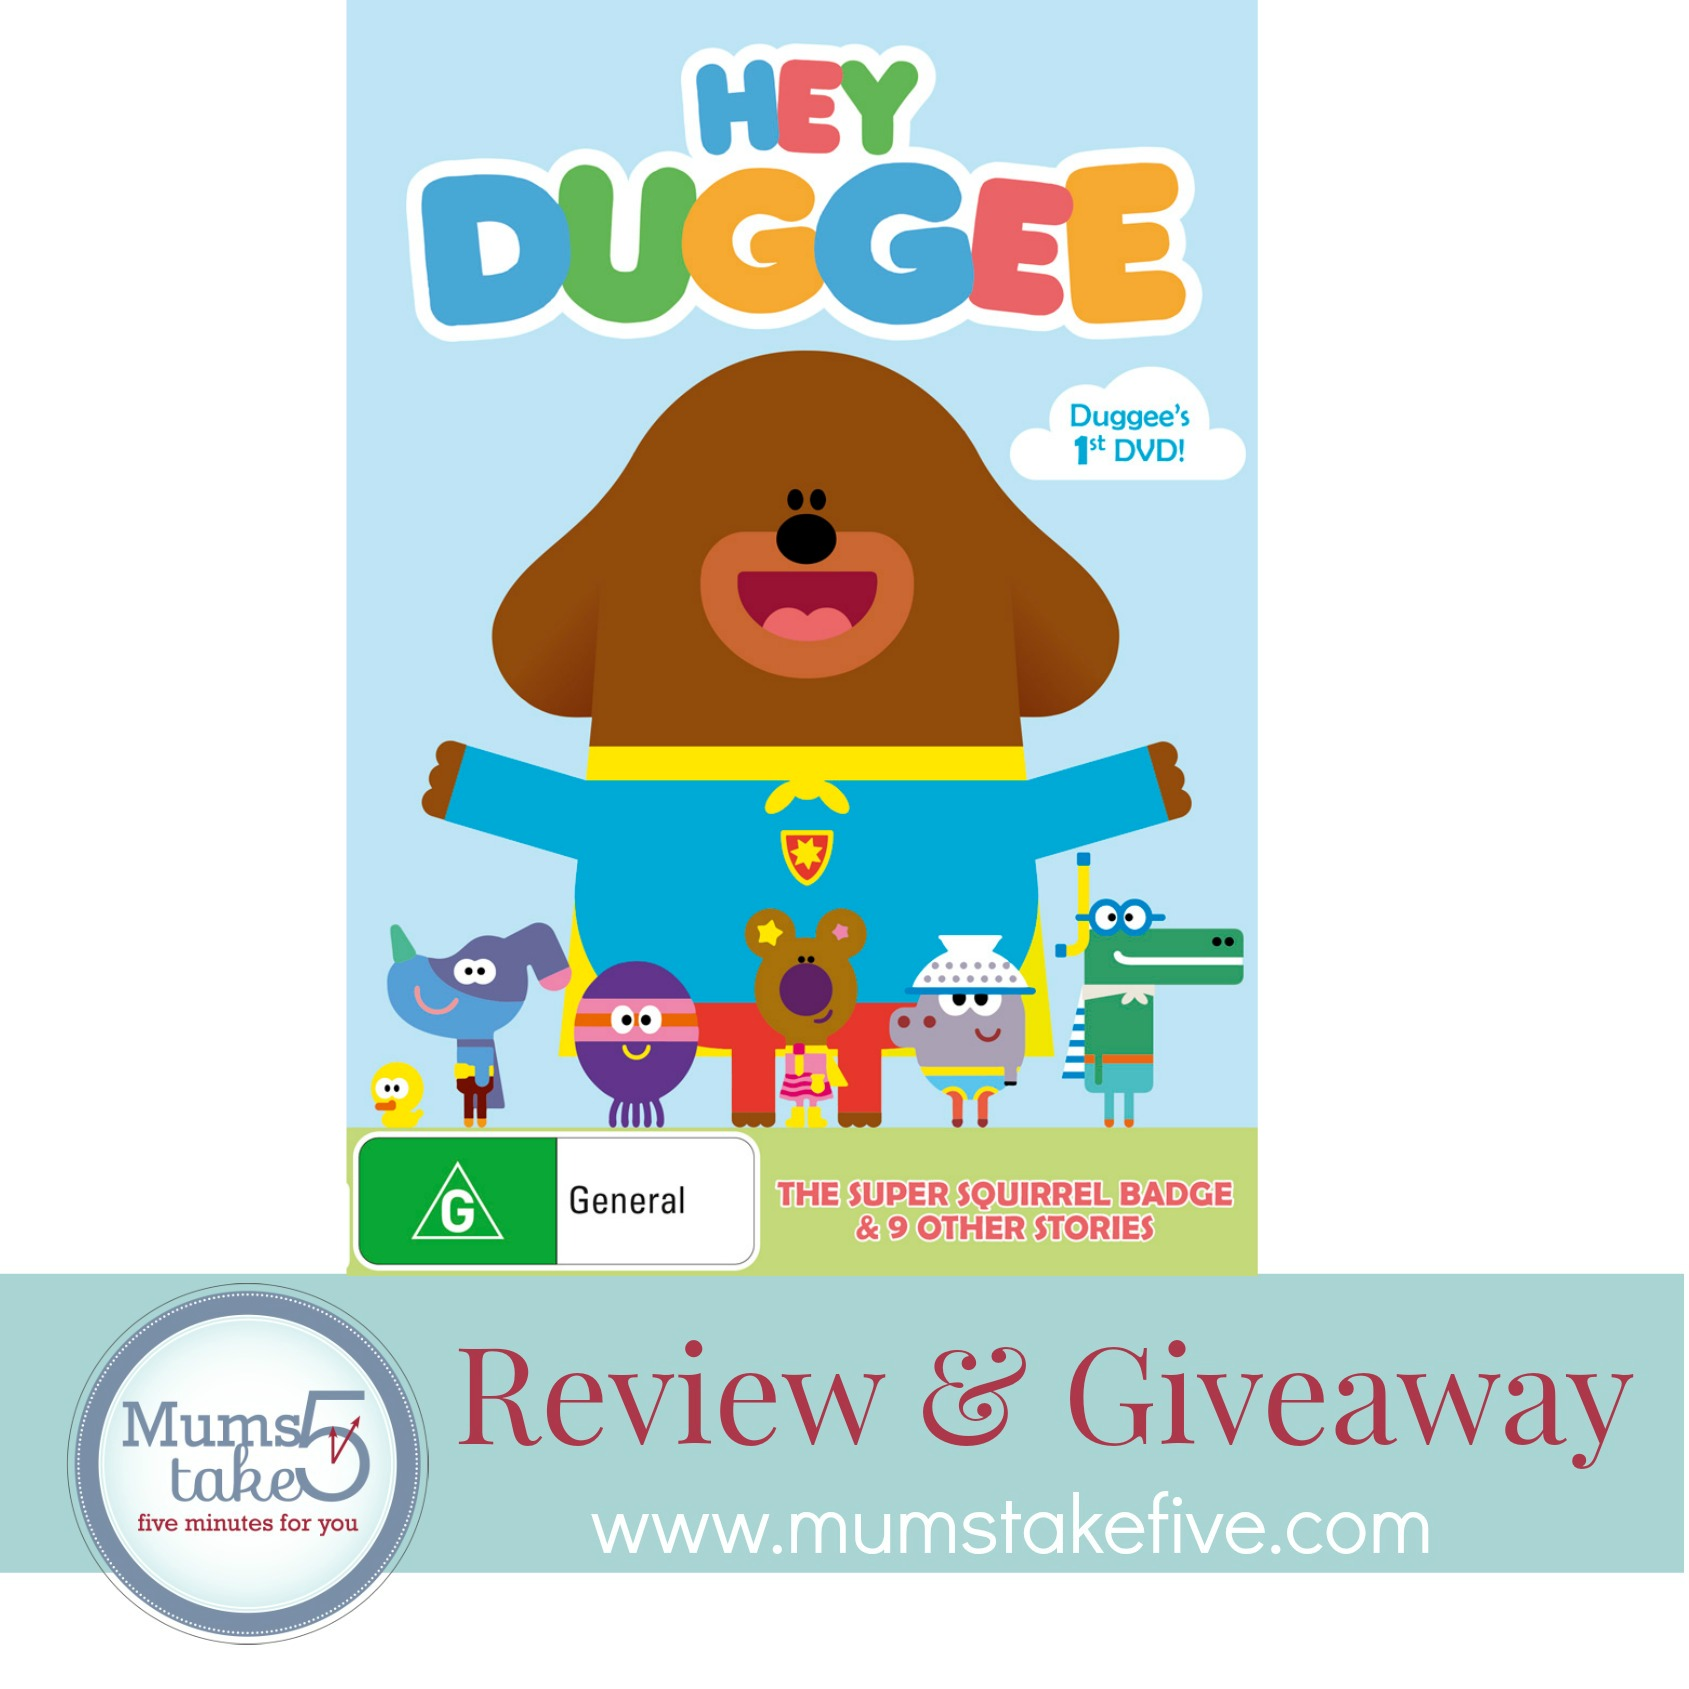 Hey Duggee  DVD Giveaway